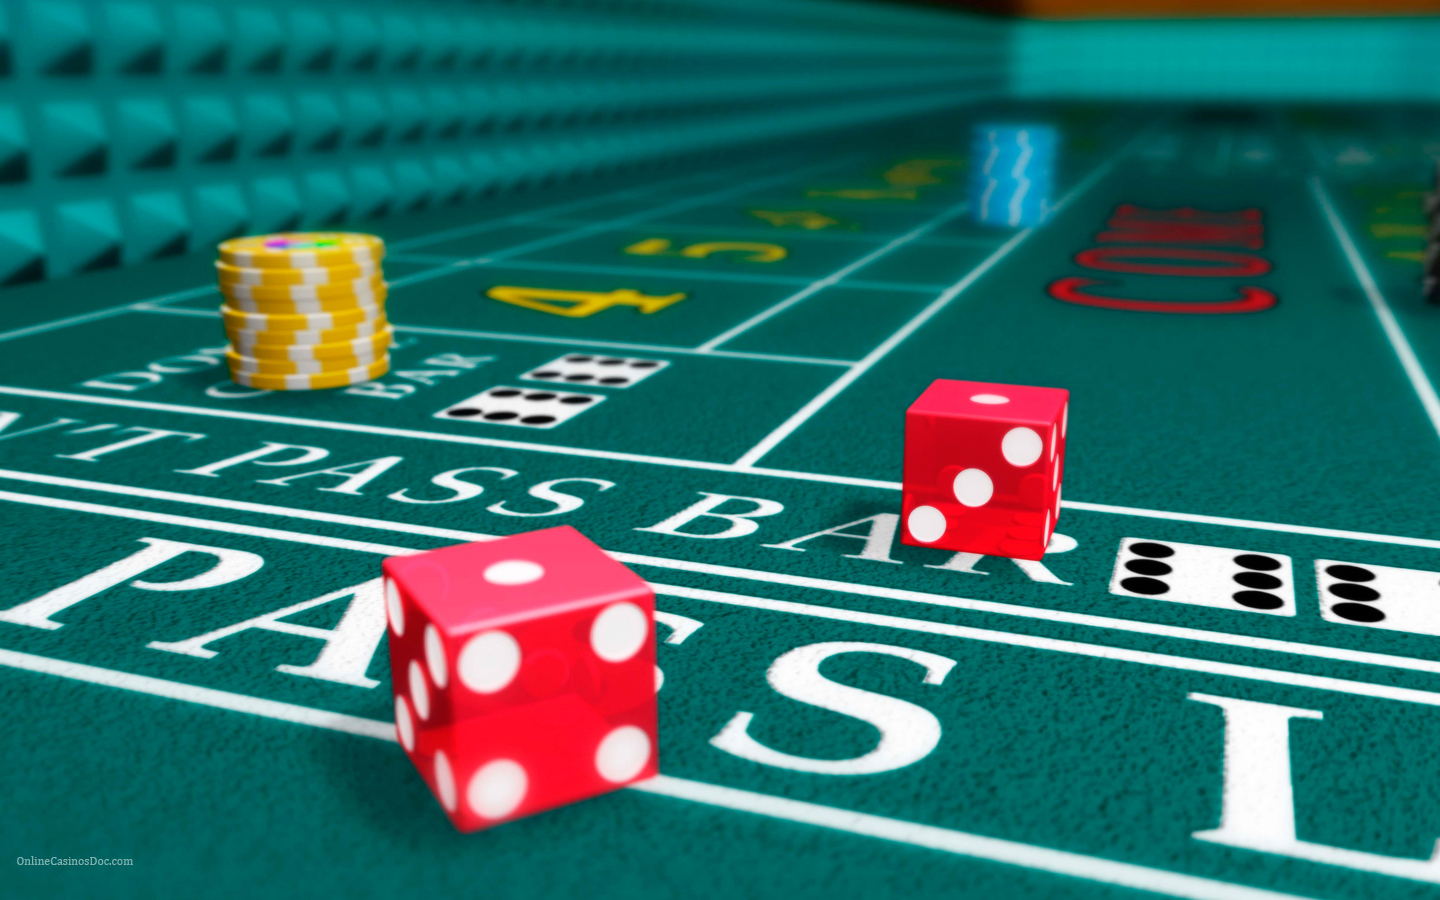 Amateurs Online Casino But Overlook A Couple Of Simple Things